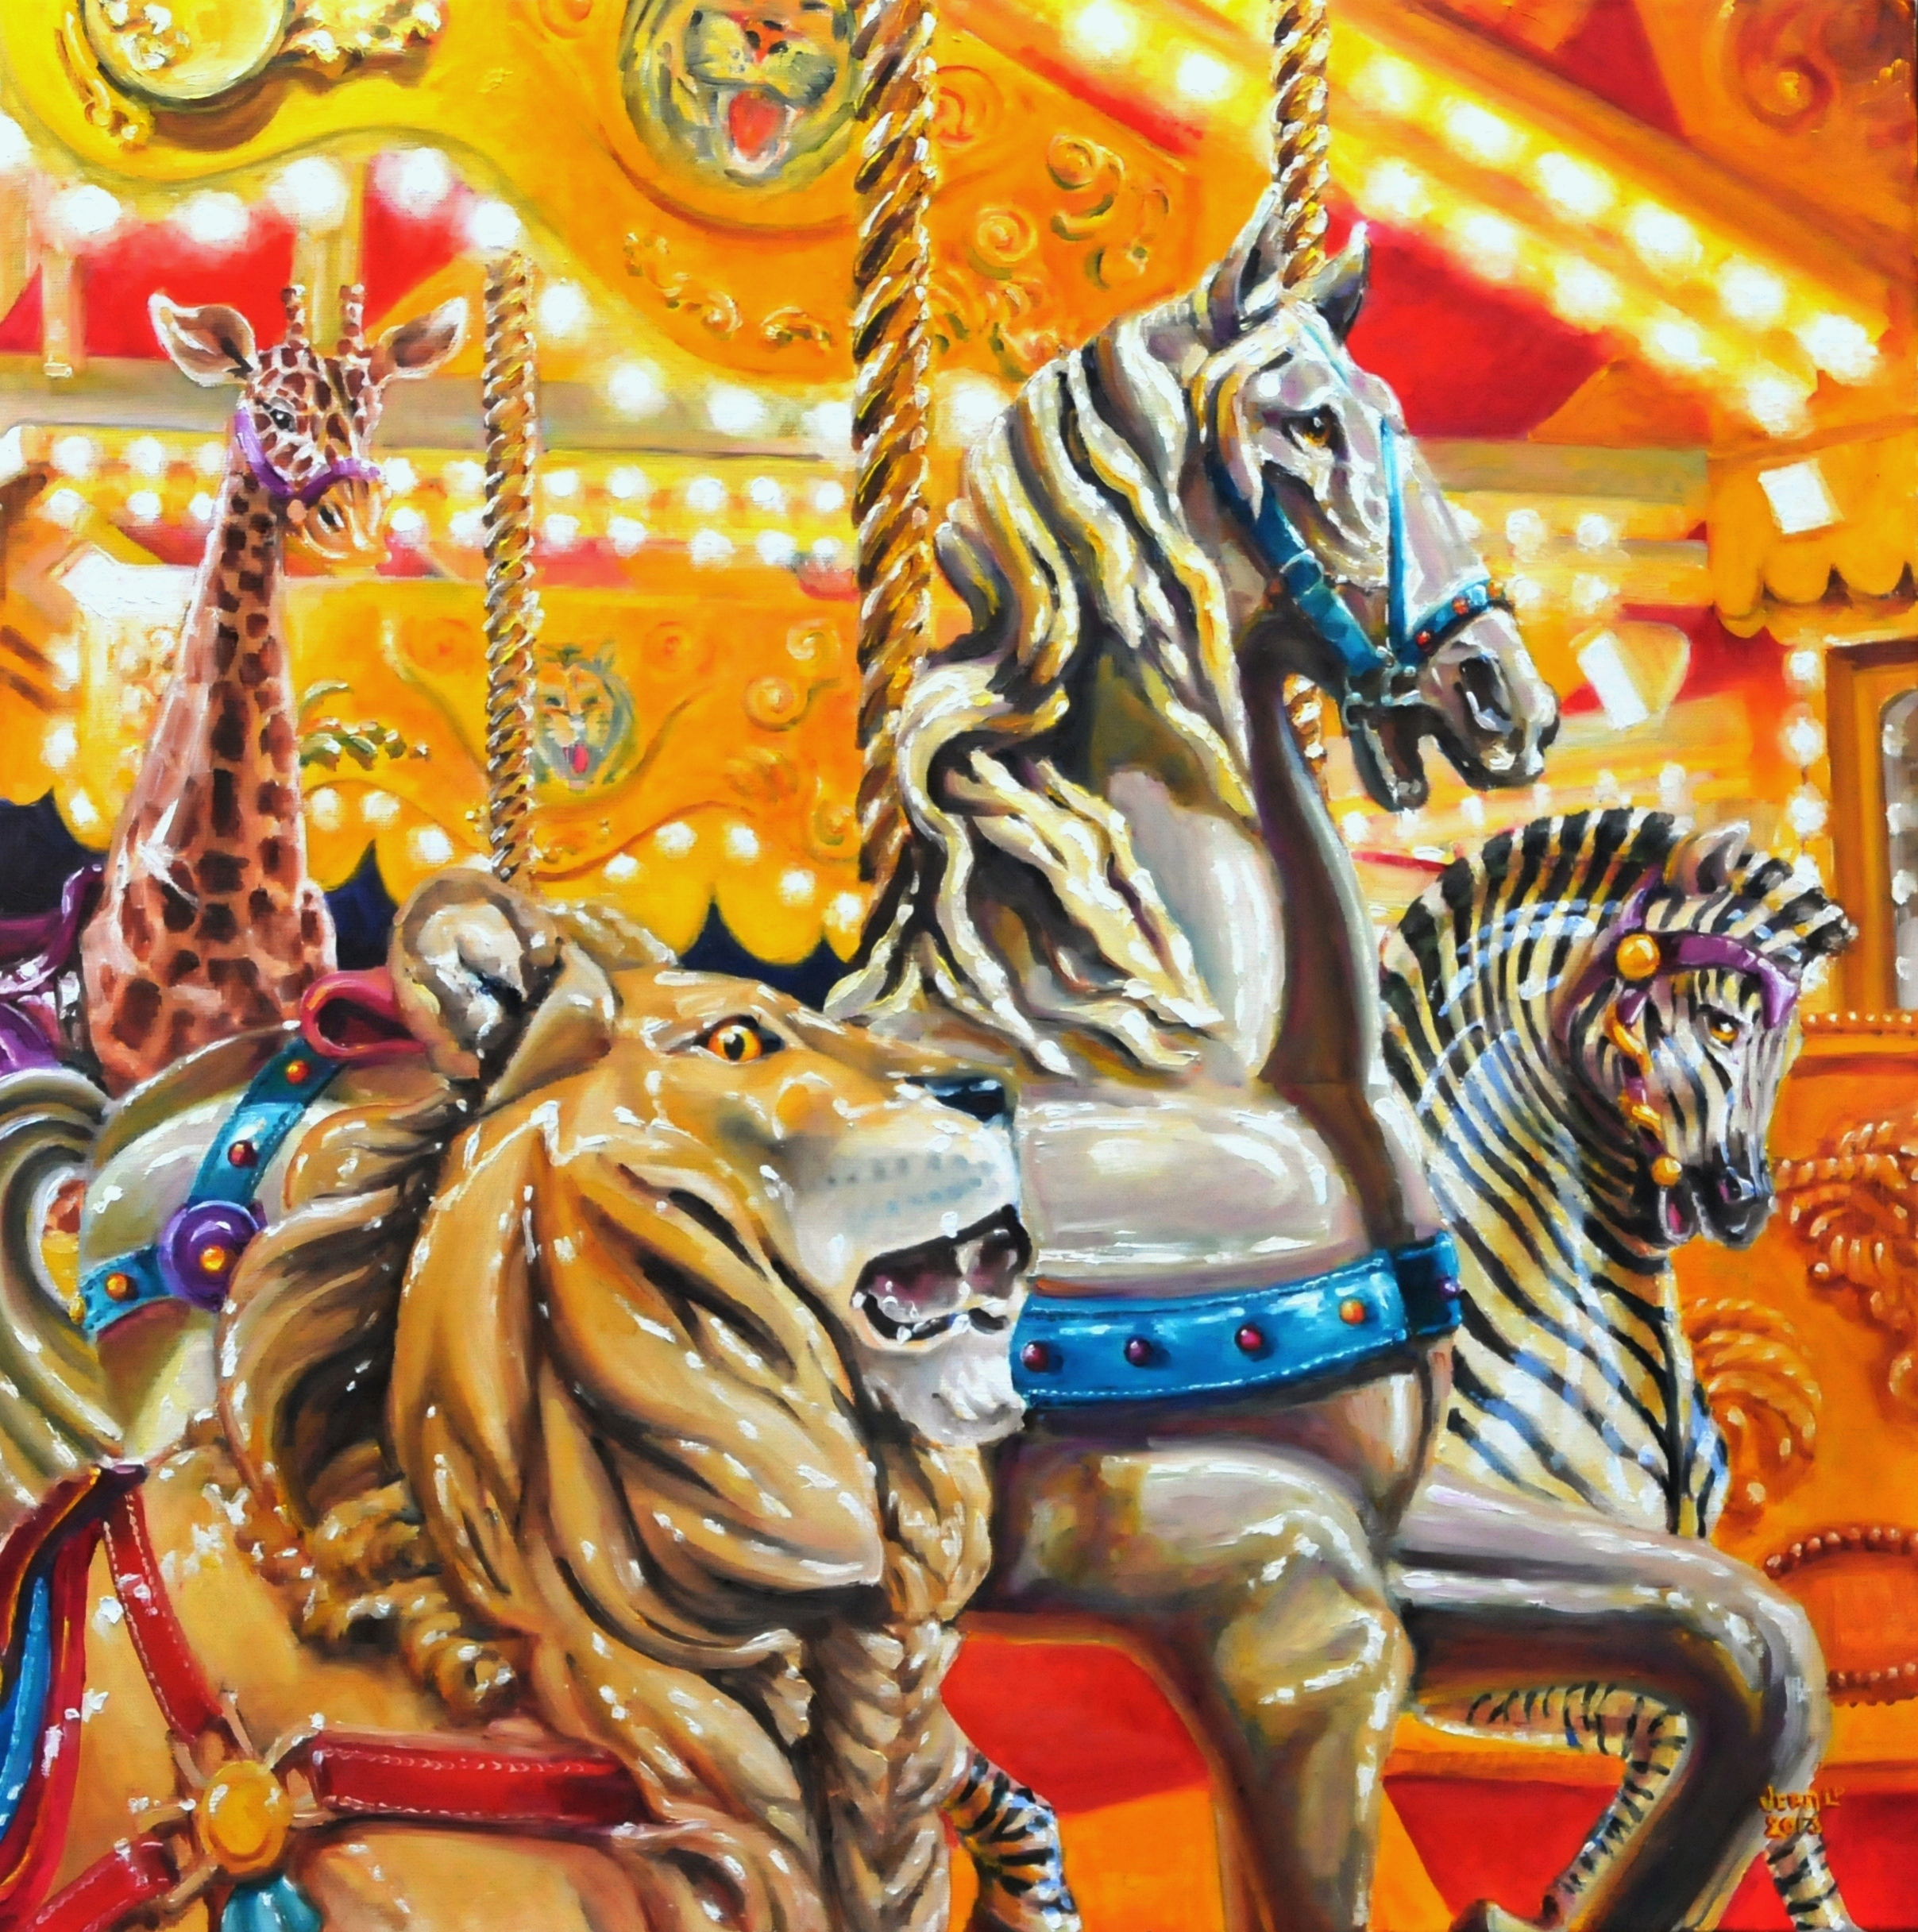 vera cauwenberghs fine art painter: oil painting carousel merry-go ...